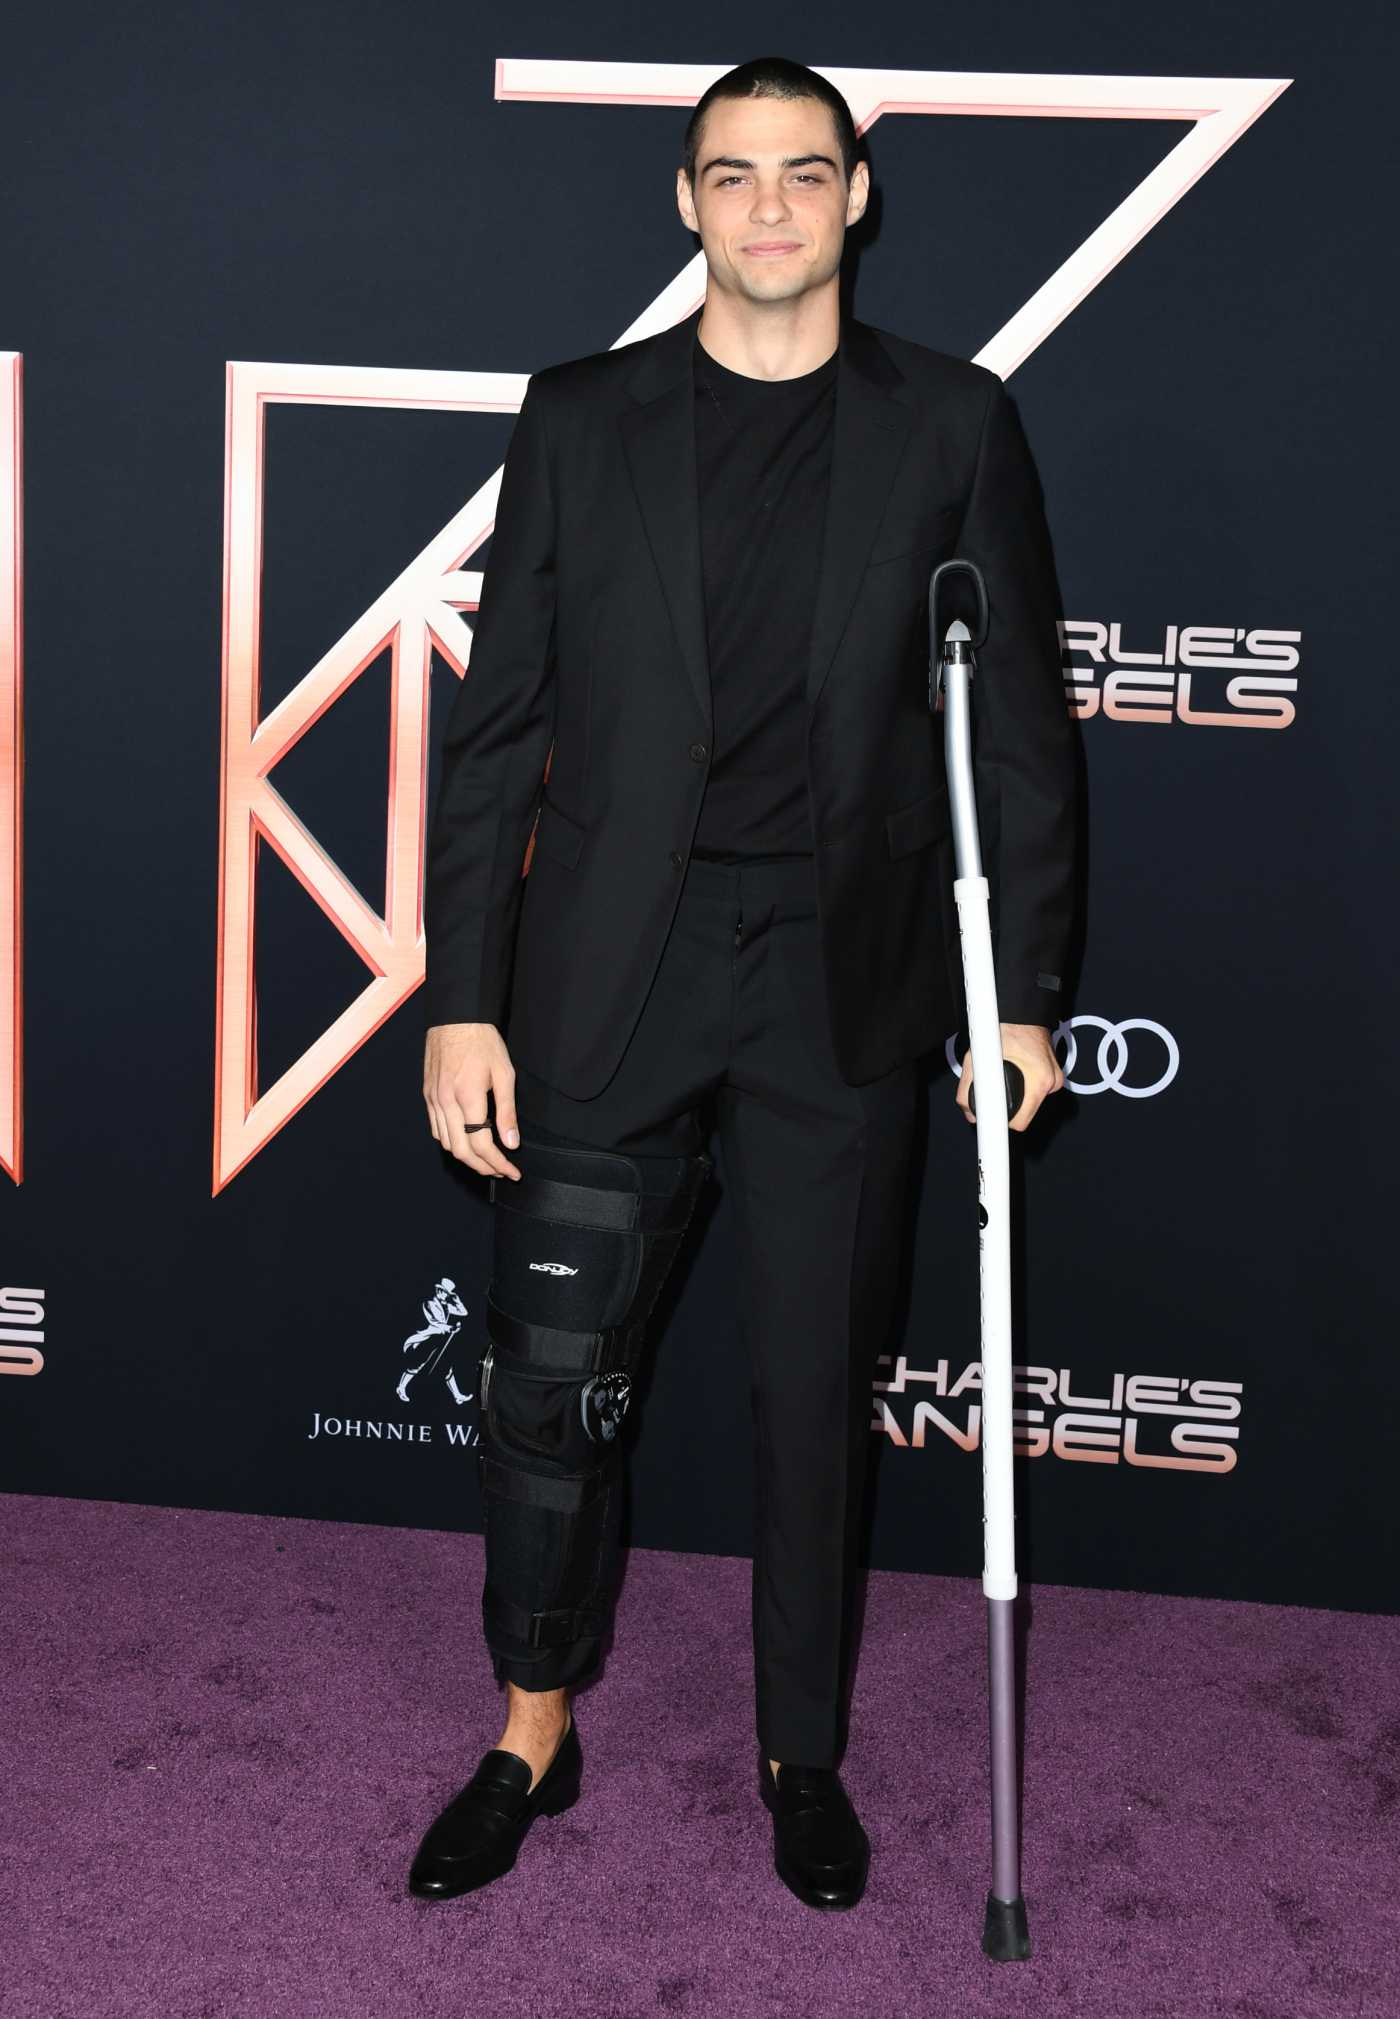 Noah Centineo Attends the Charlie's Angels World Premiere in Los Angeles 11/11/2019